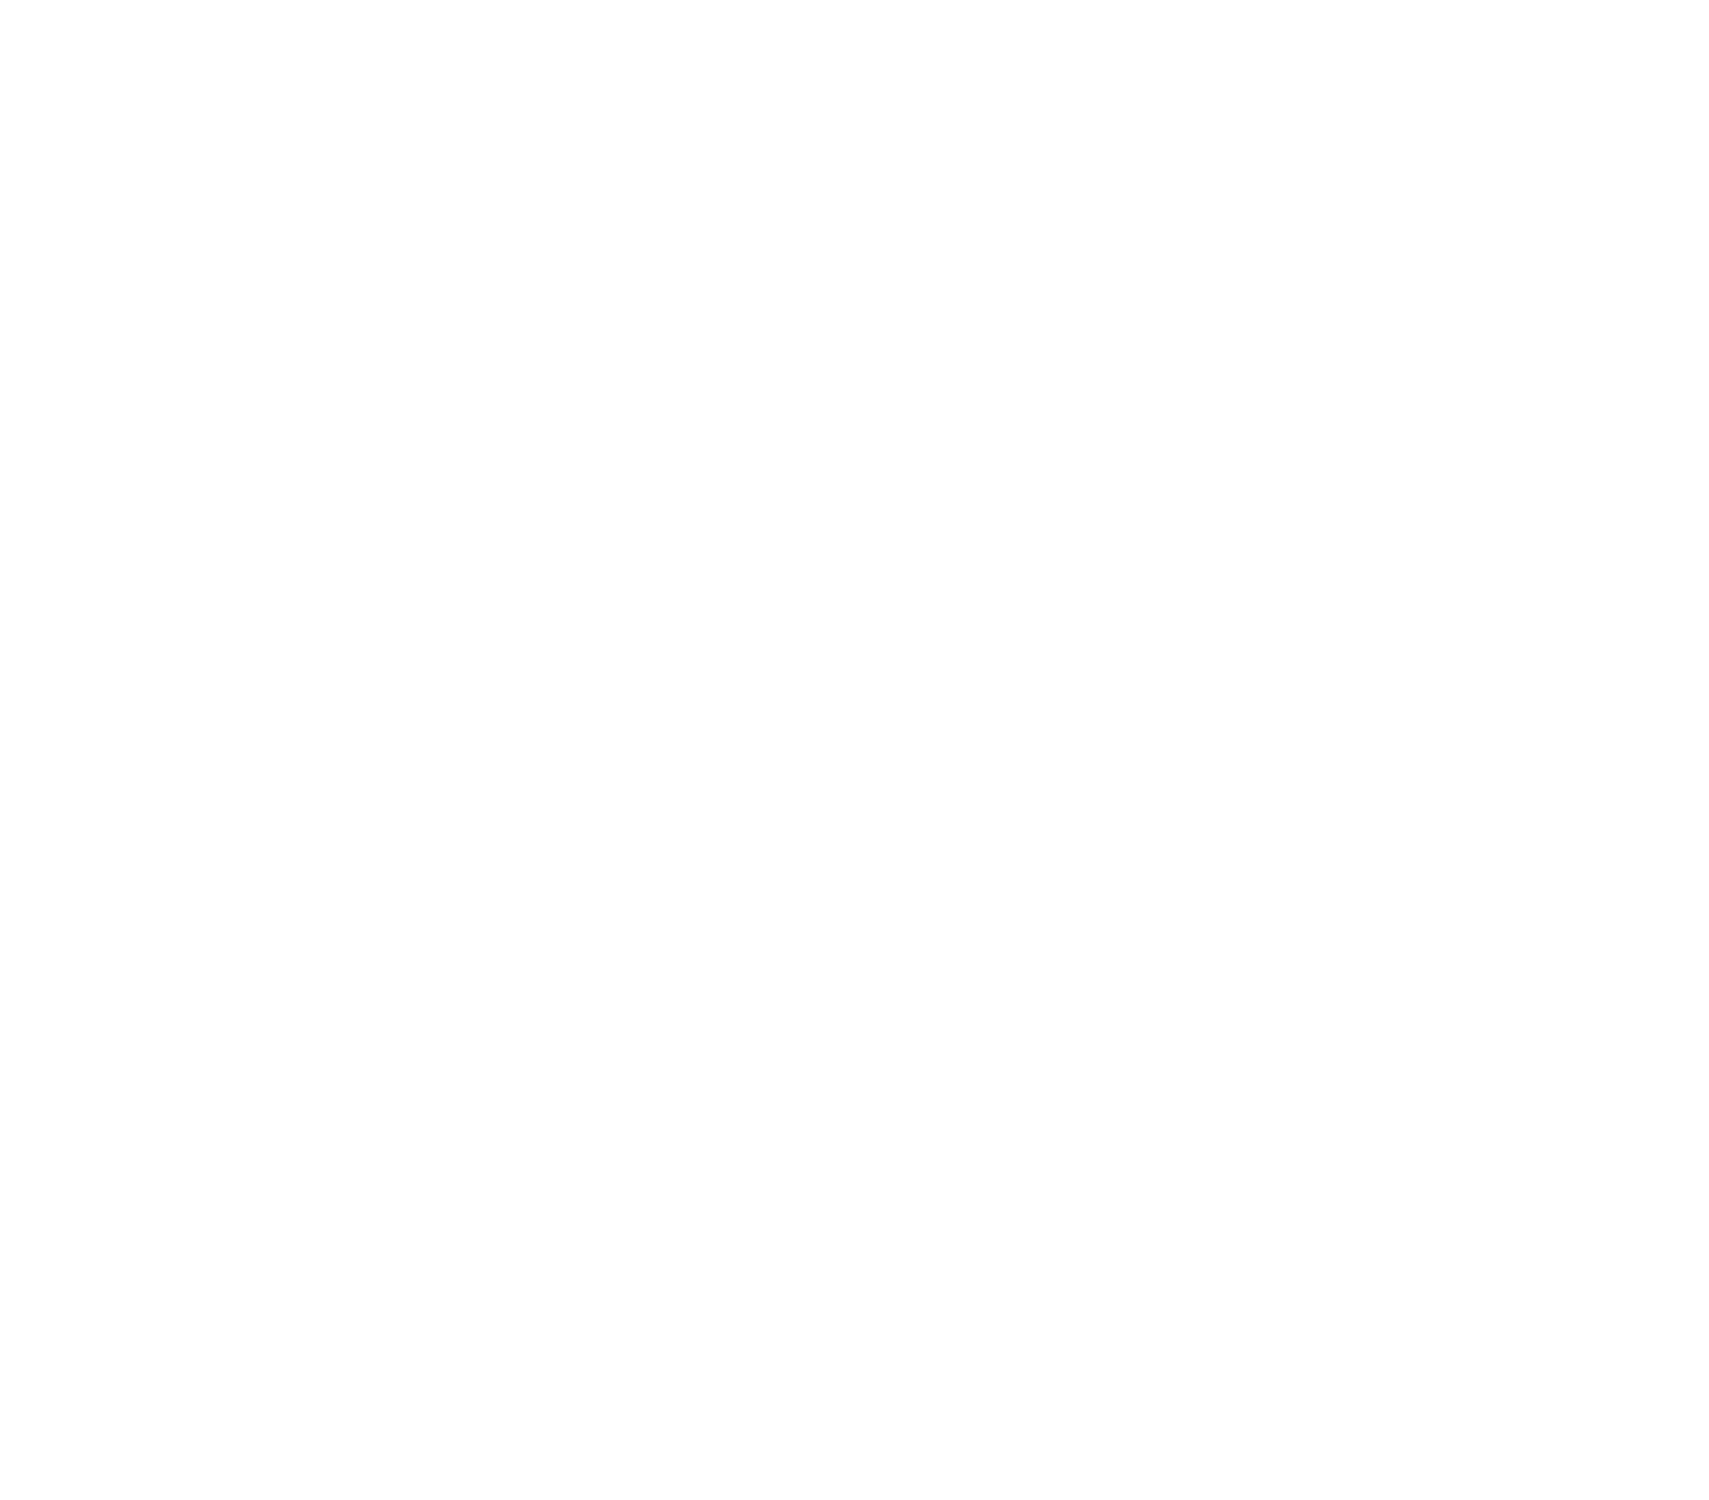 Minnesota Mental Health Services White.png